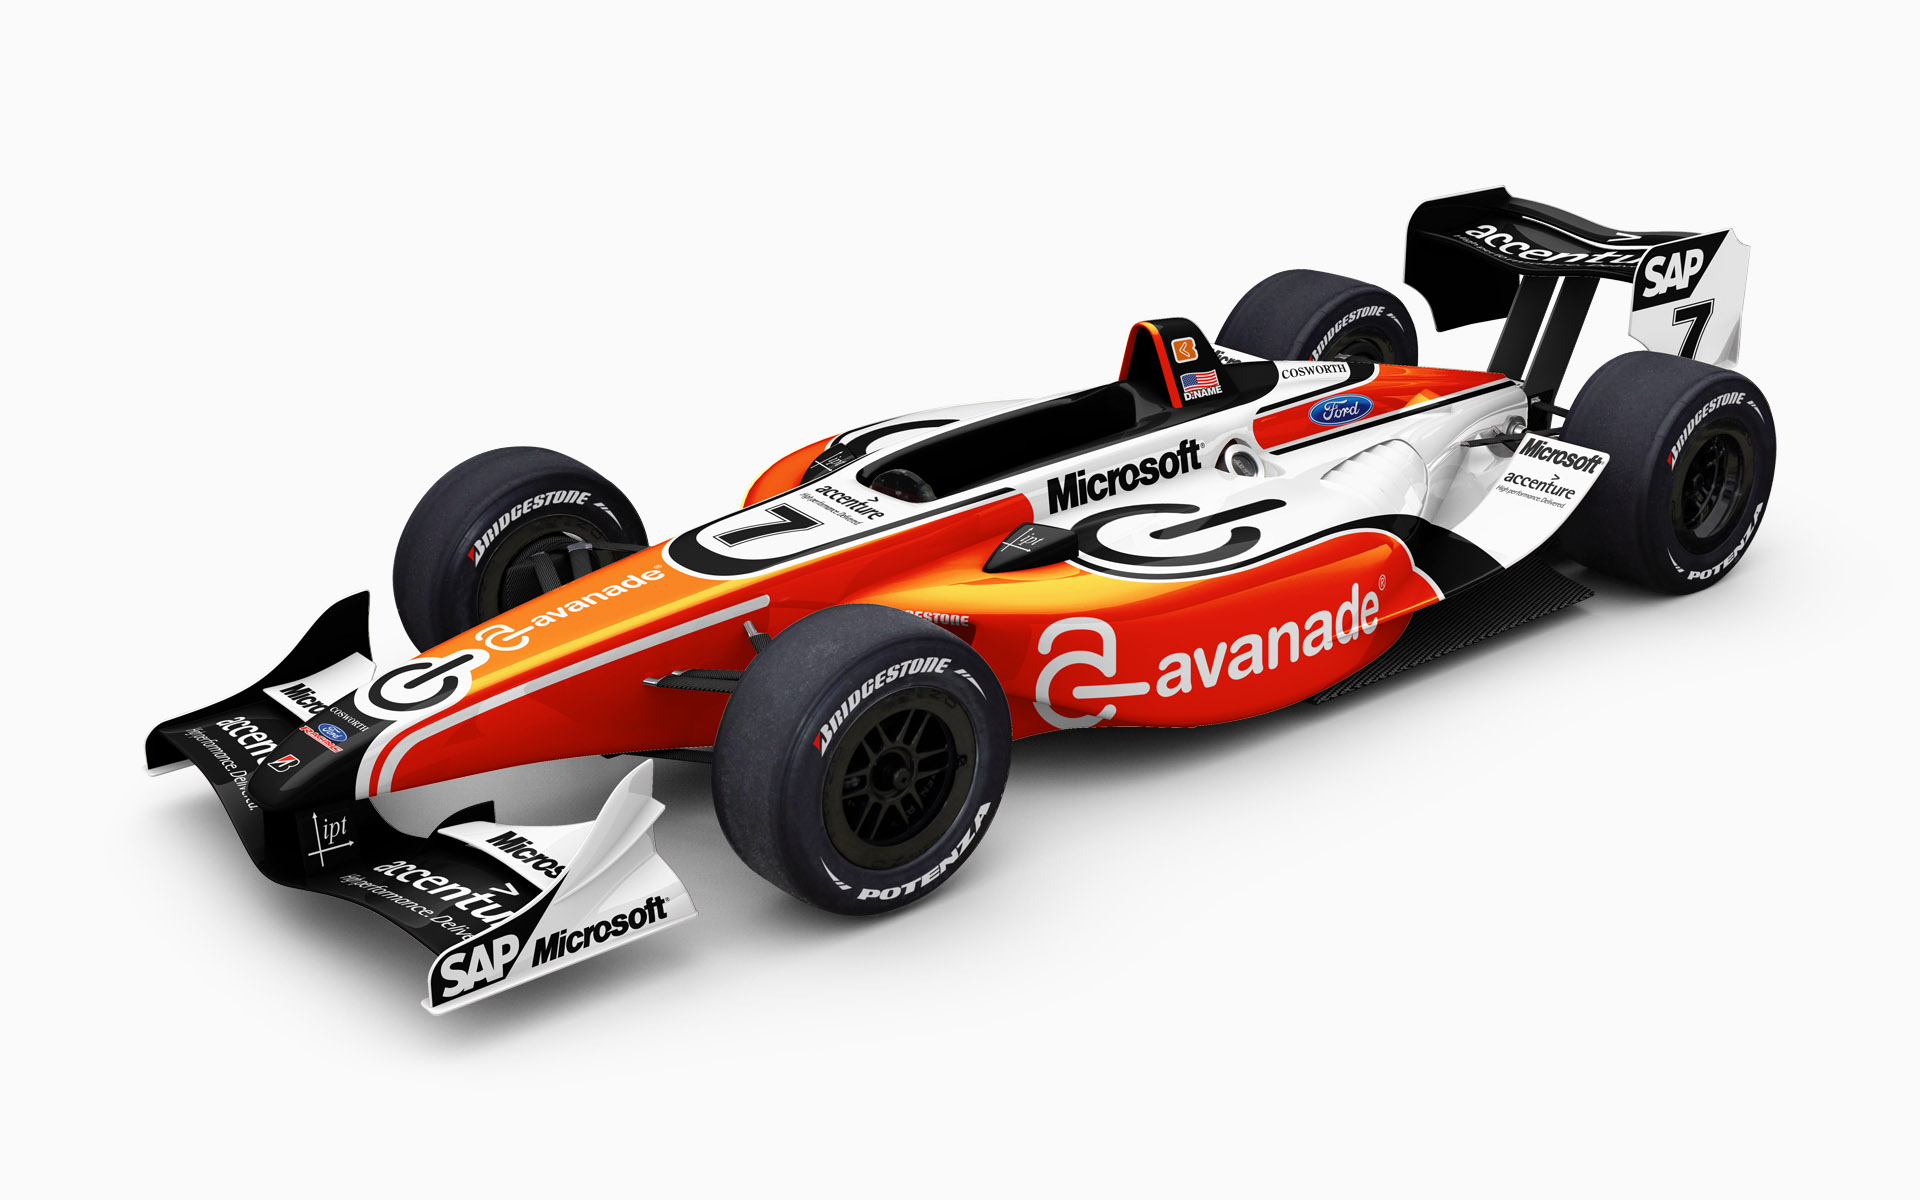 2007 IPT Avanade Panoz DP01 Ford Champ Car Livery Visualization